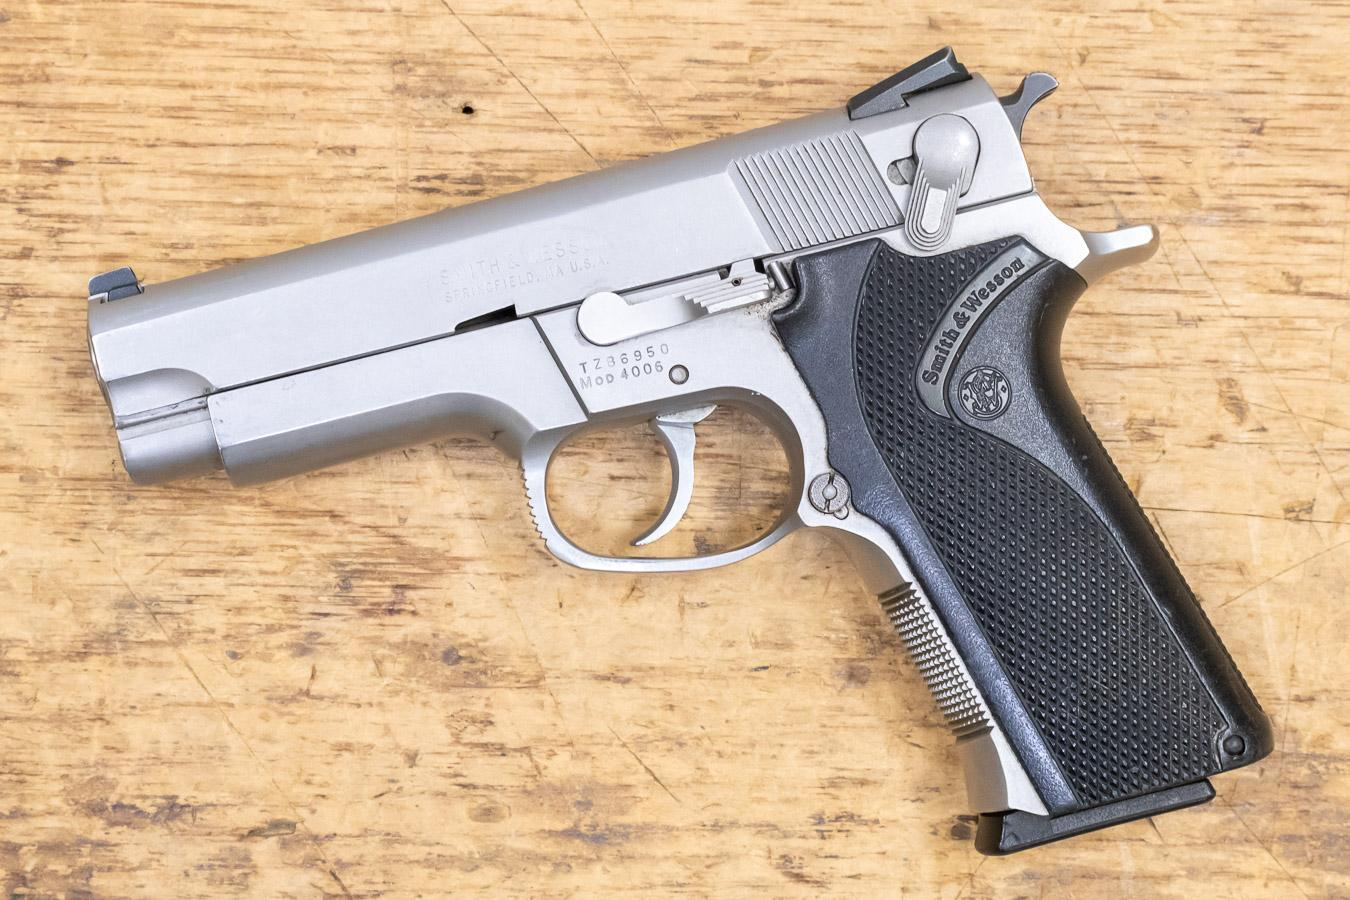 Smith & Wesson Model 4006 chambered in .40 mm Smith & Wesson with 11 rounds magazine capacity